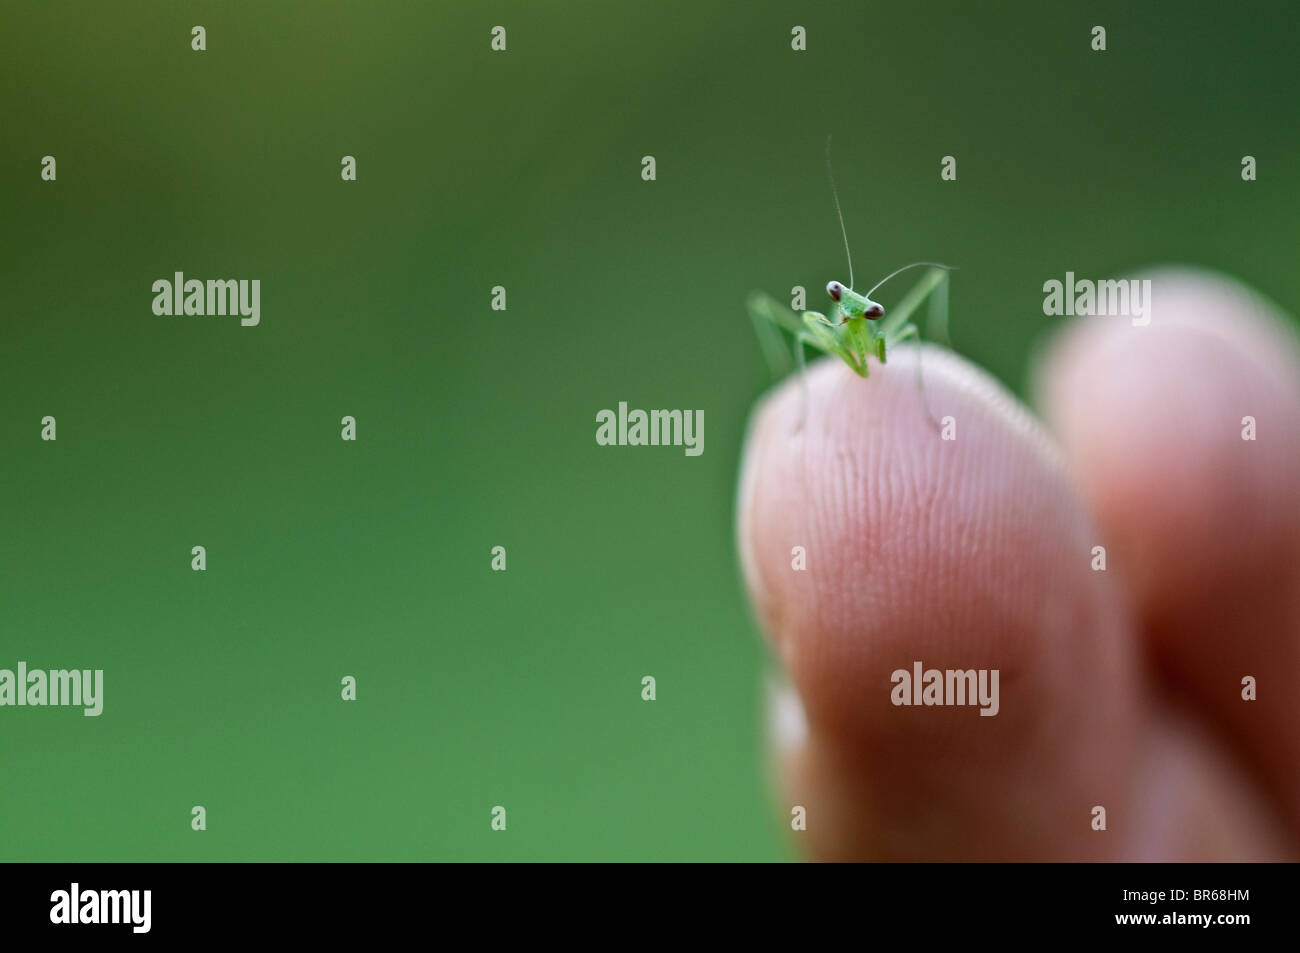 Tiny Animal in Big Hand - Stock Image